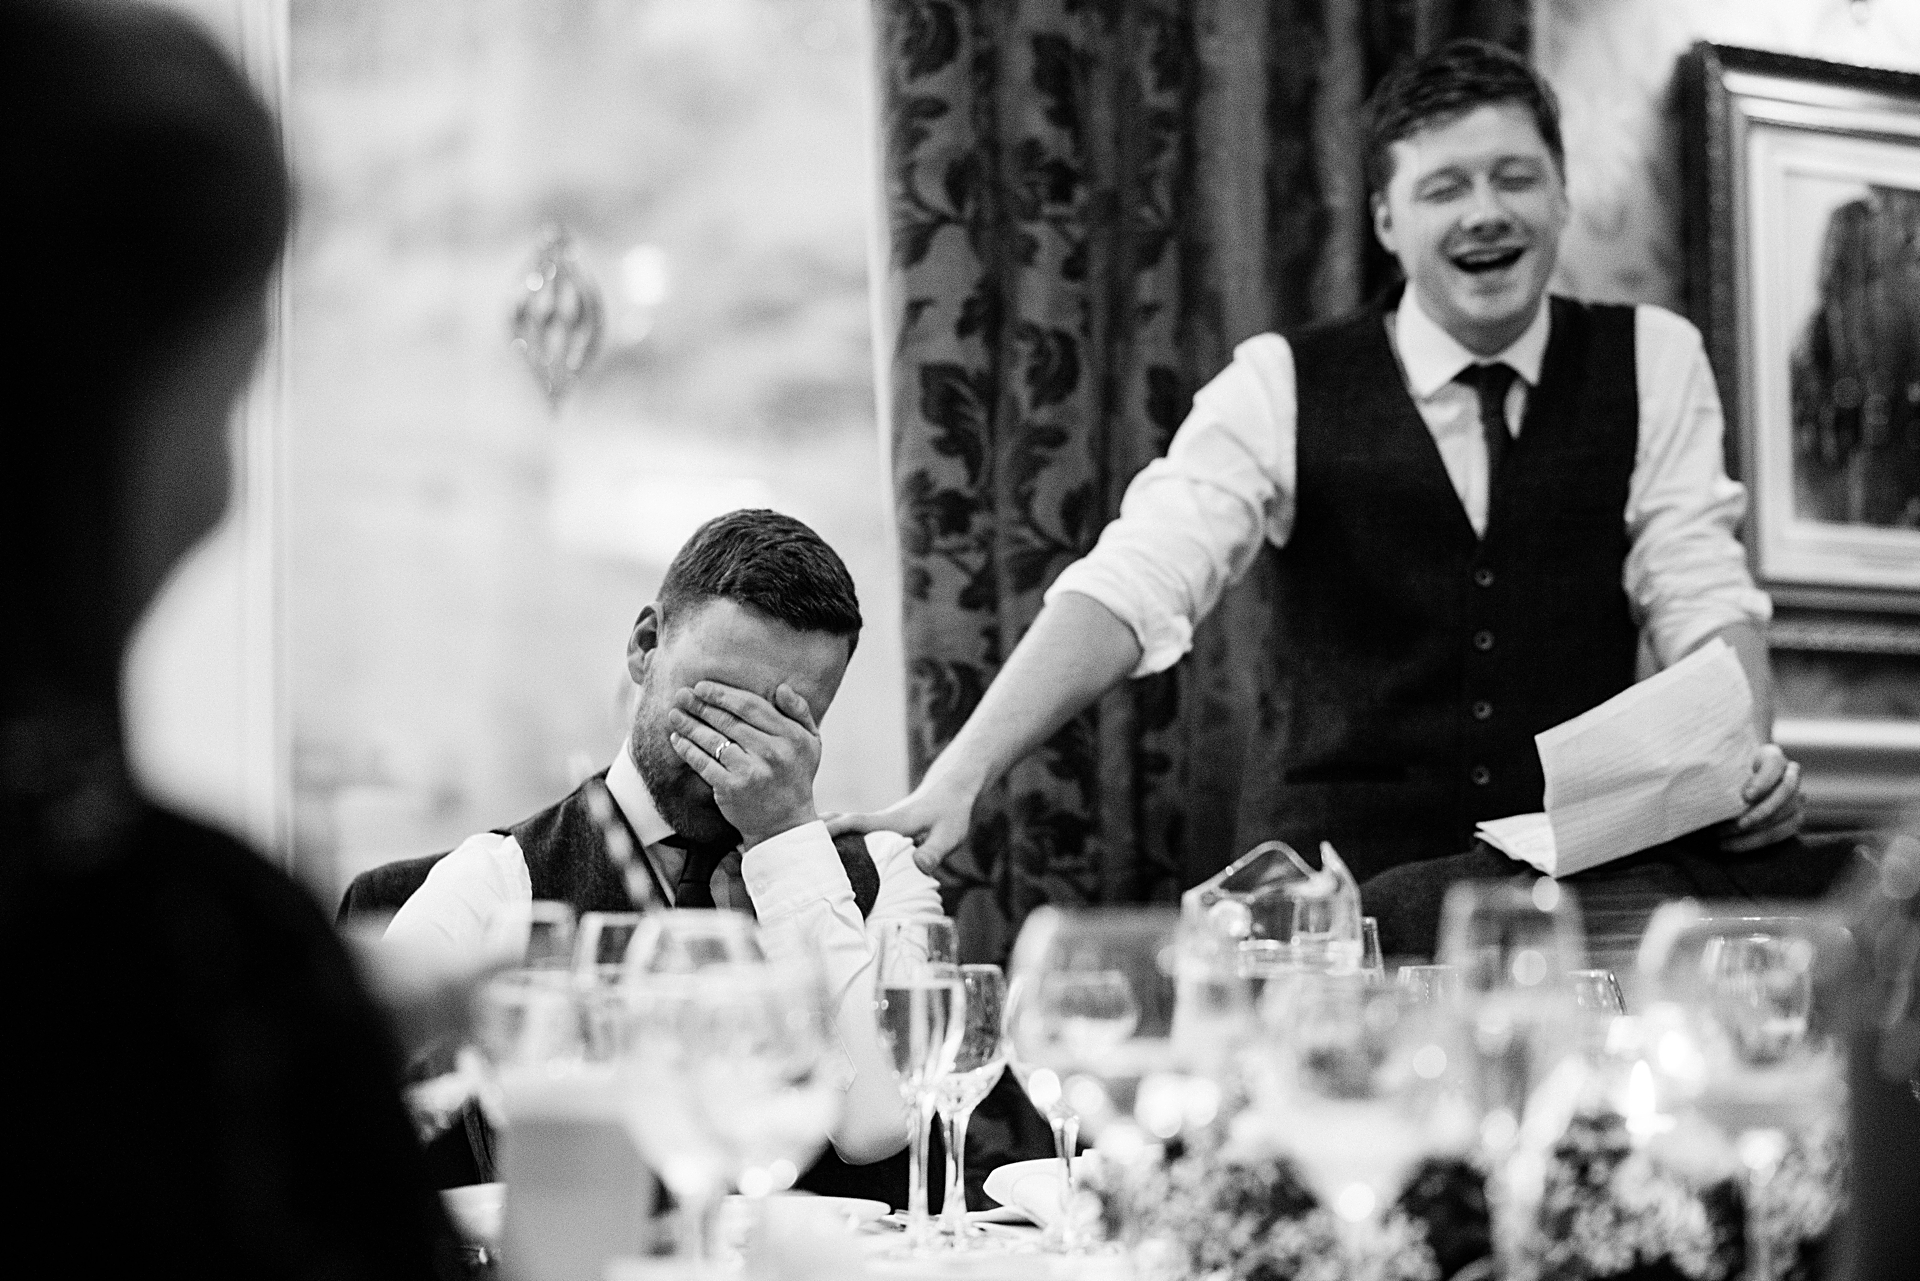 best mans speech embarrasses groom